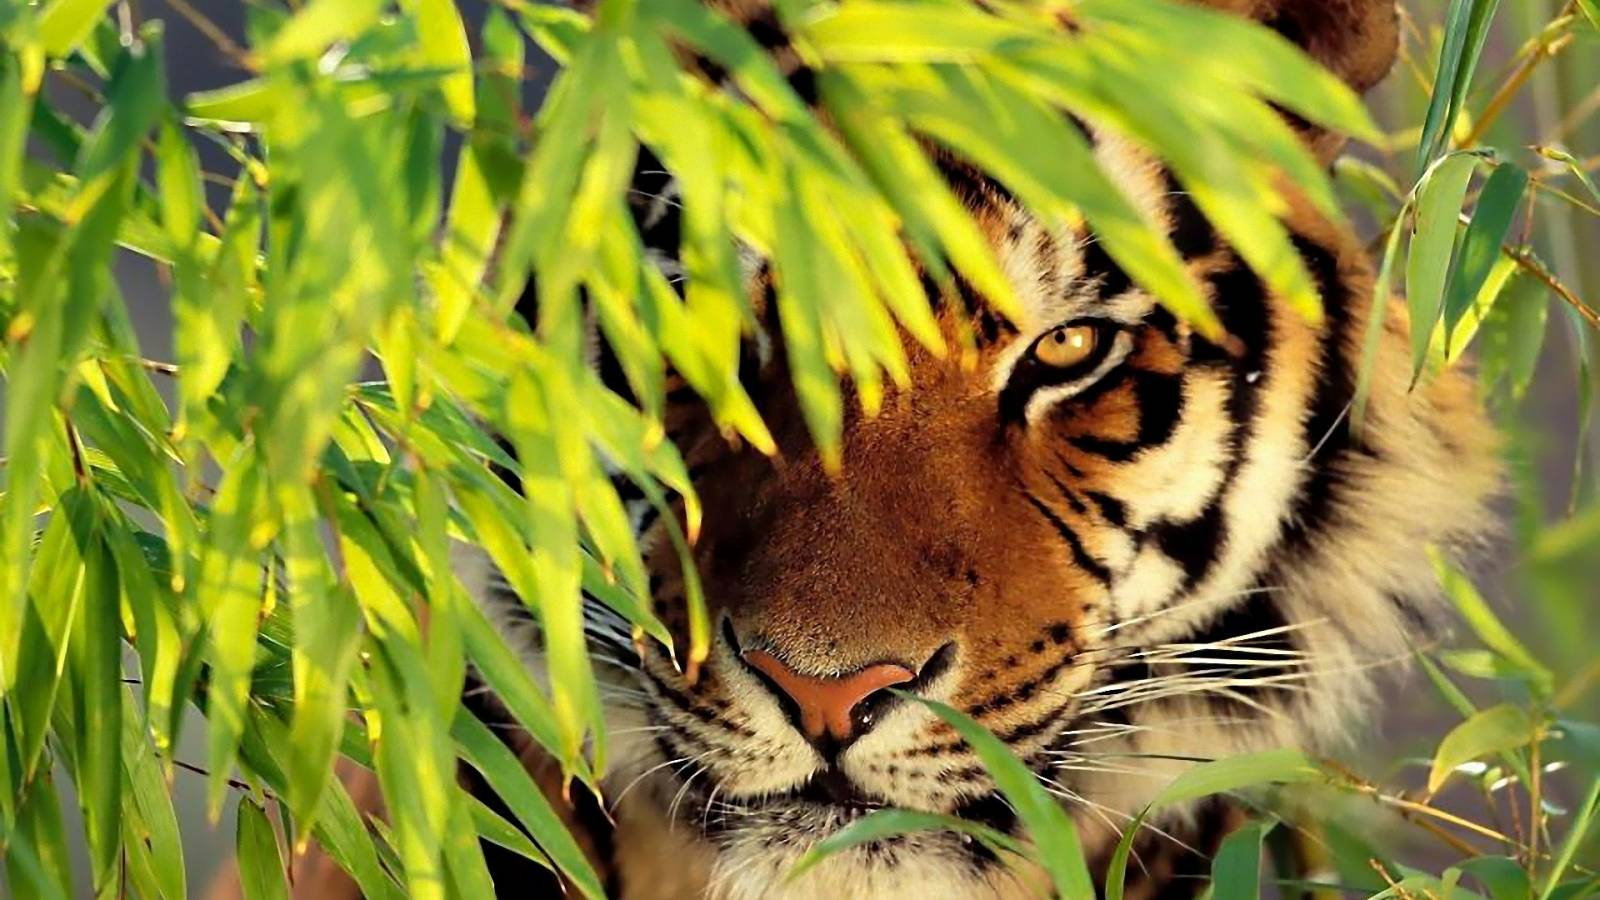 HD Tigers Wallpapers and Photos  HD Animals Wallpapers 1600x900